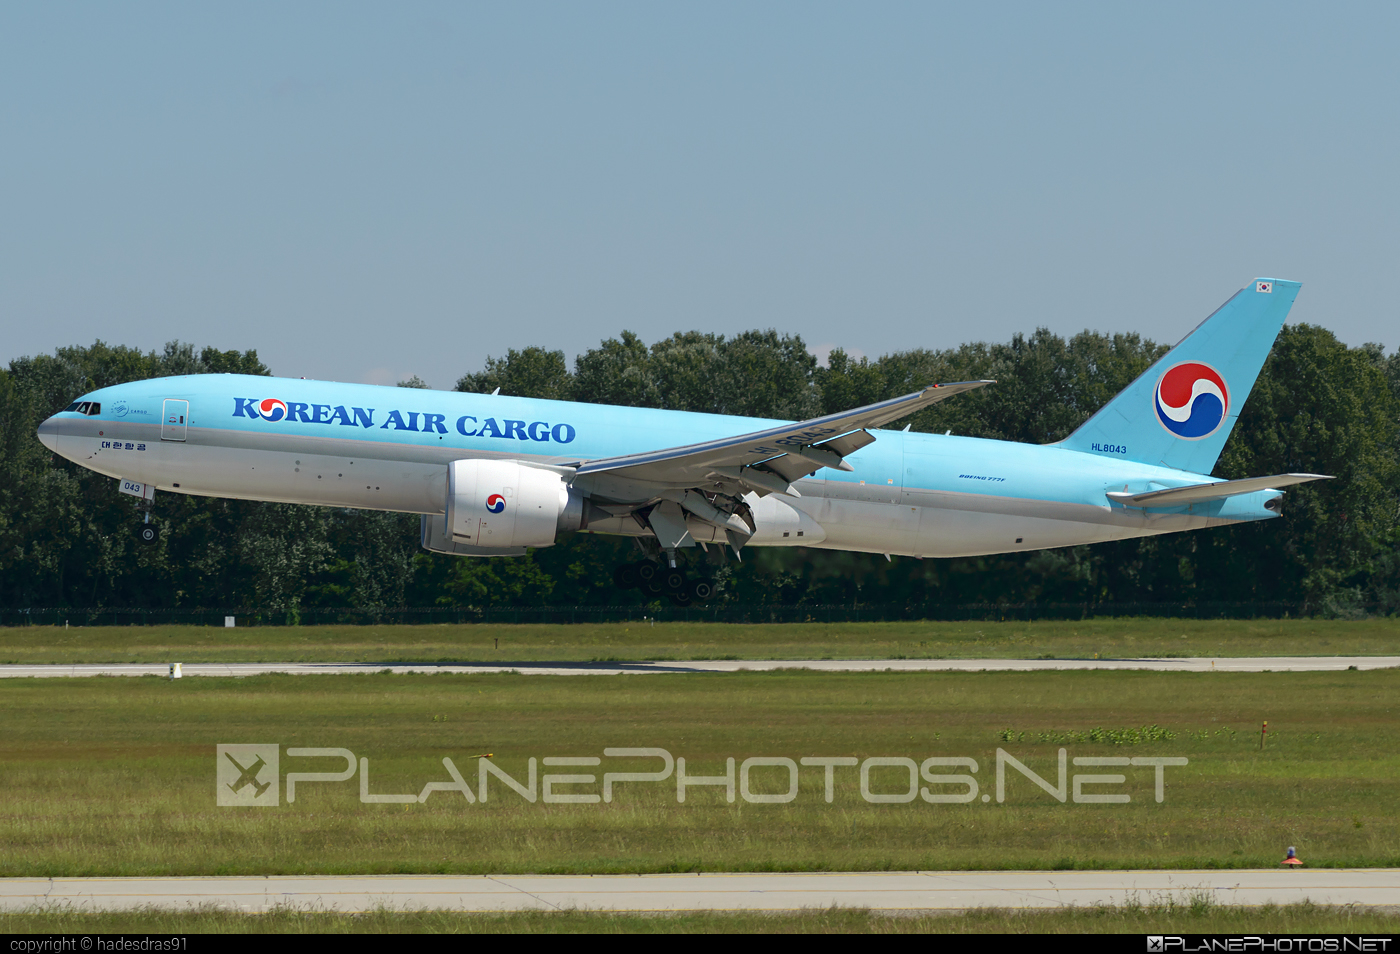 Boeing 777F - HL8043 operated by Korean Air Cargo #b777 #b777f #b777freighter #boeing #boeing777 #koreanair #koreanaircargo #tripleseven